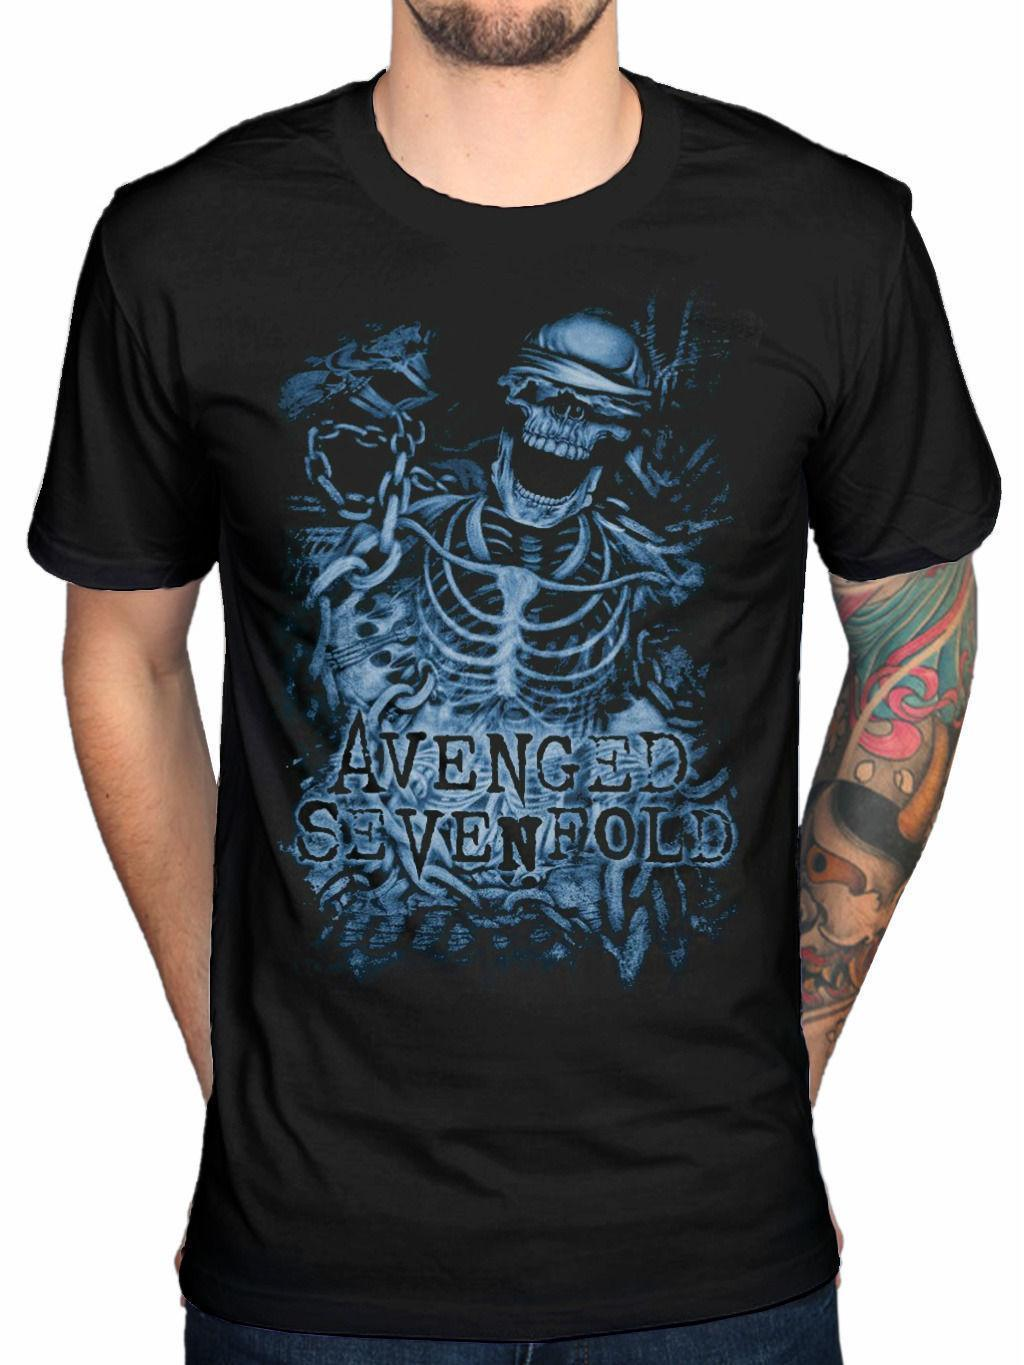 *NEW* OFFICIAL AVENGED SEVENFOLD CHAINED SKELETON T SHIRT LADIES S M L